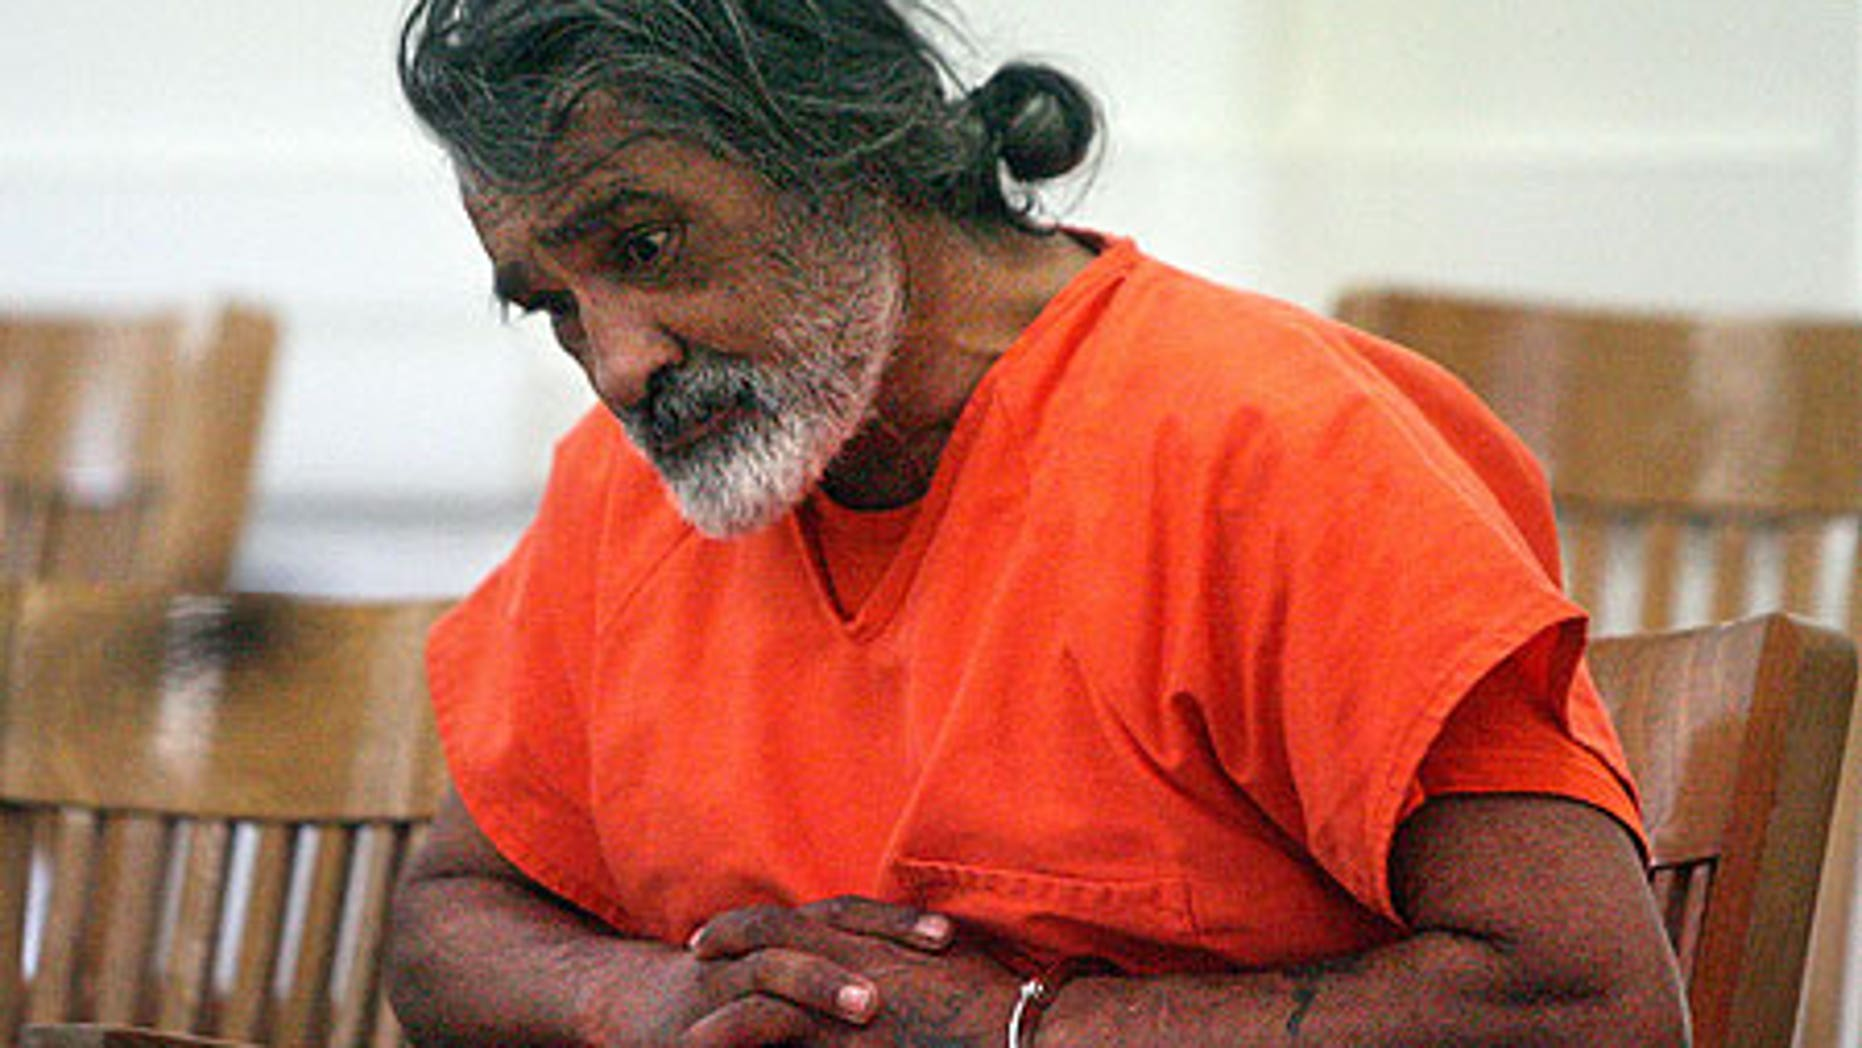 Dec. 29, 2008: Robert E. Aragon, 55, appeares in court in Shoshone, Idaho.